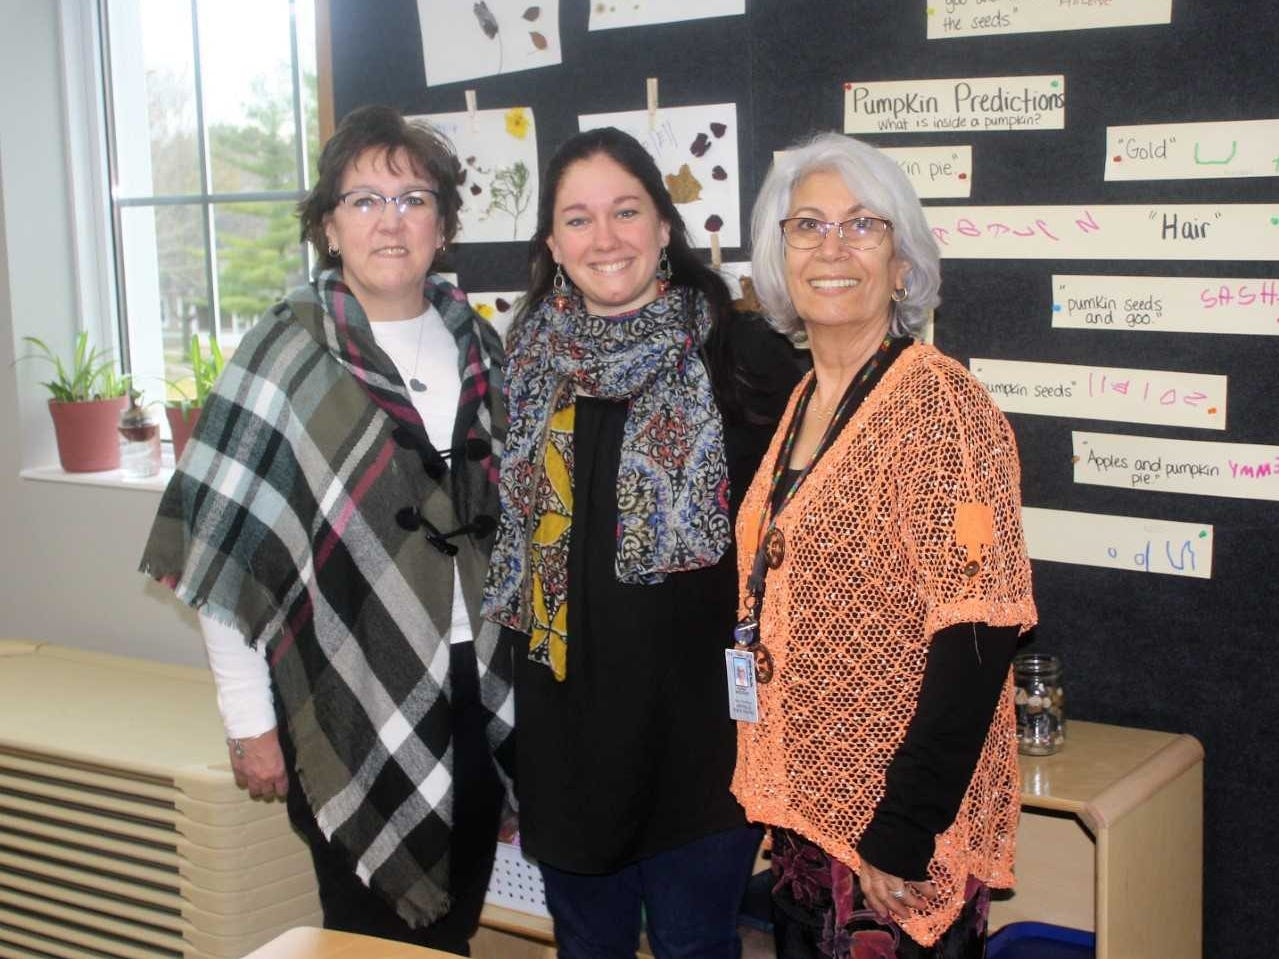 Pictured (from left) are early childhood education teachers Sue Cowher, Sarah Hoppenworth and Sued Howcari.